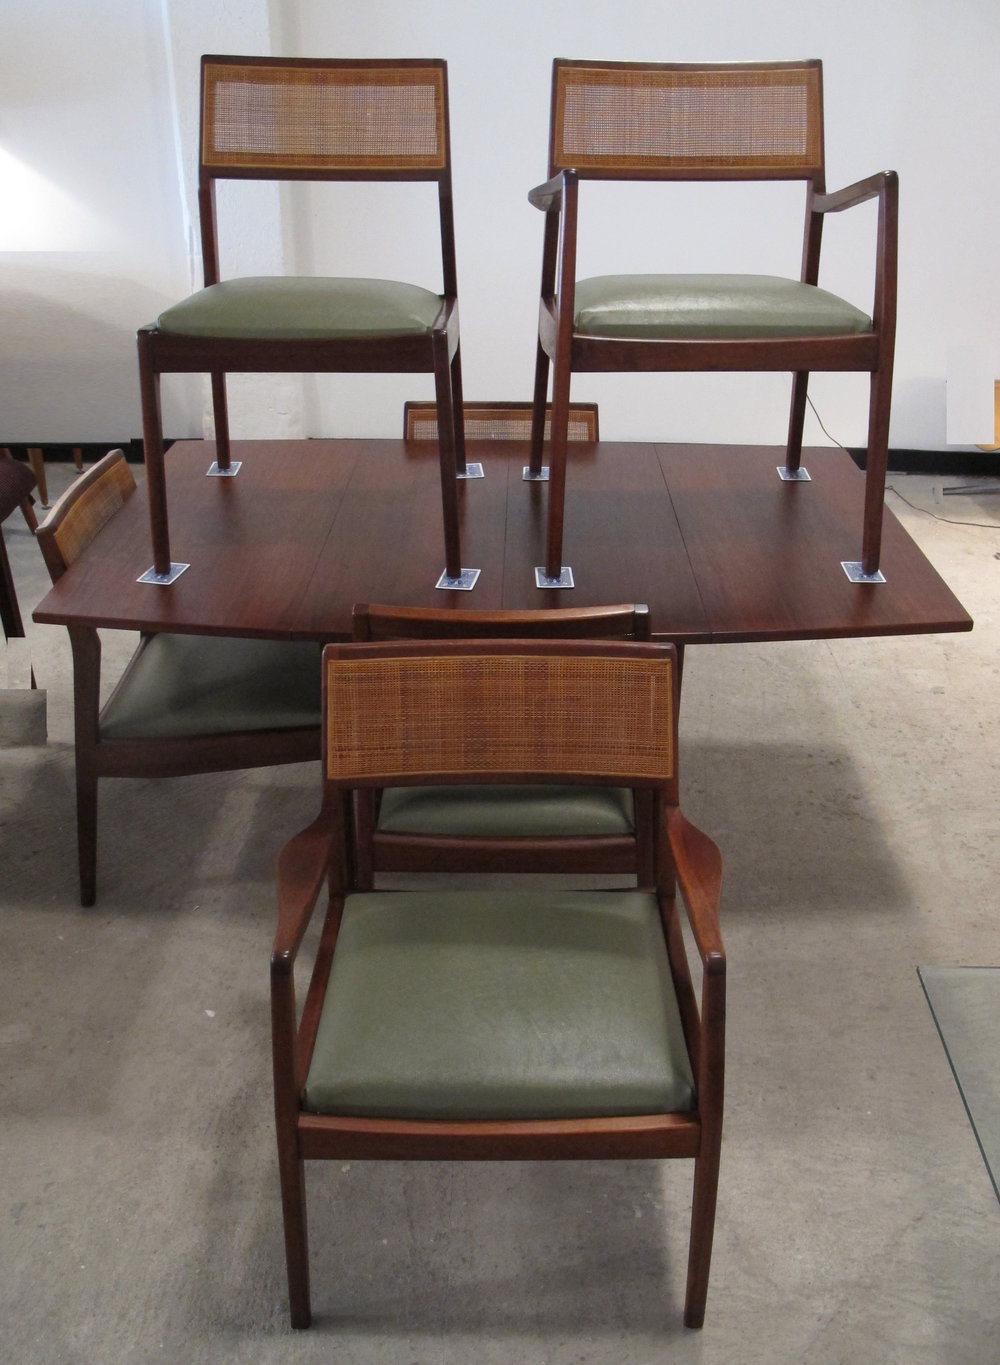 MID CENTURY WALNUT DROP LEAF DINING SET BY FOSTER-MCDAVID